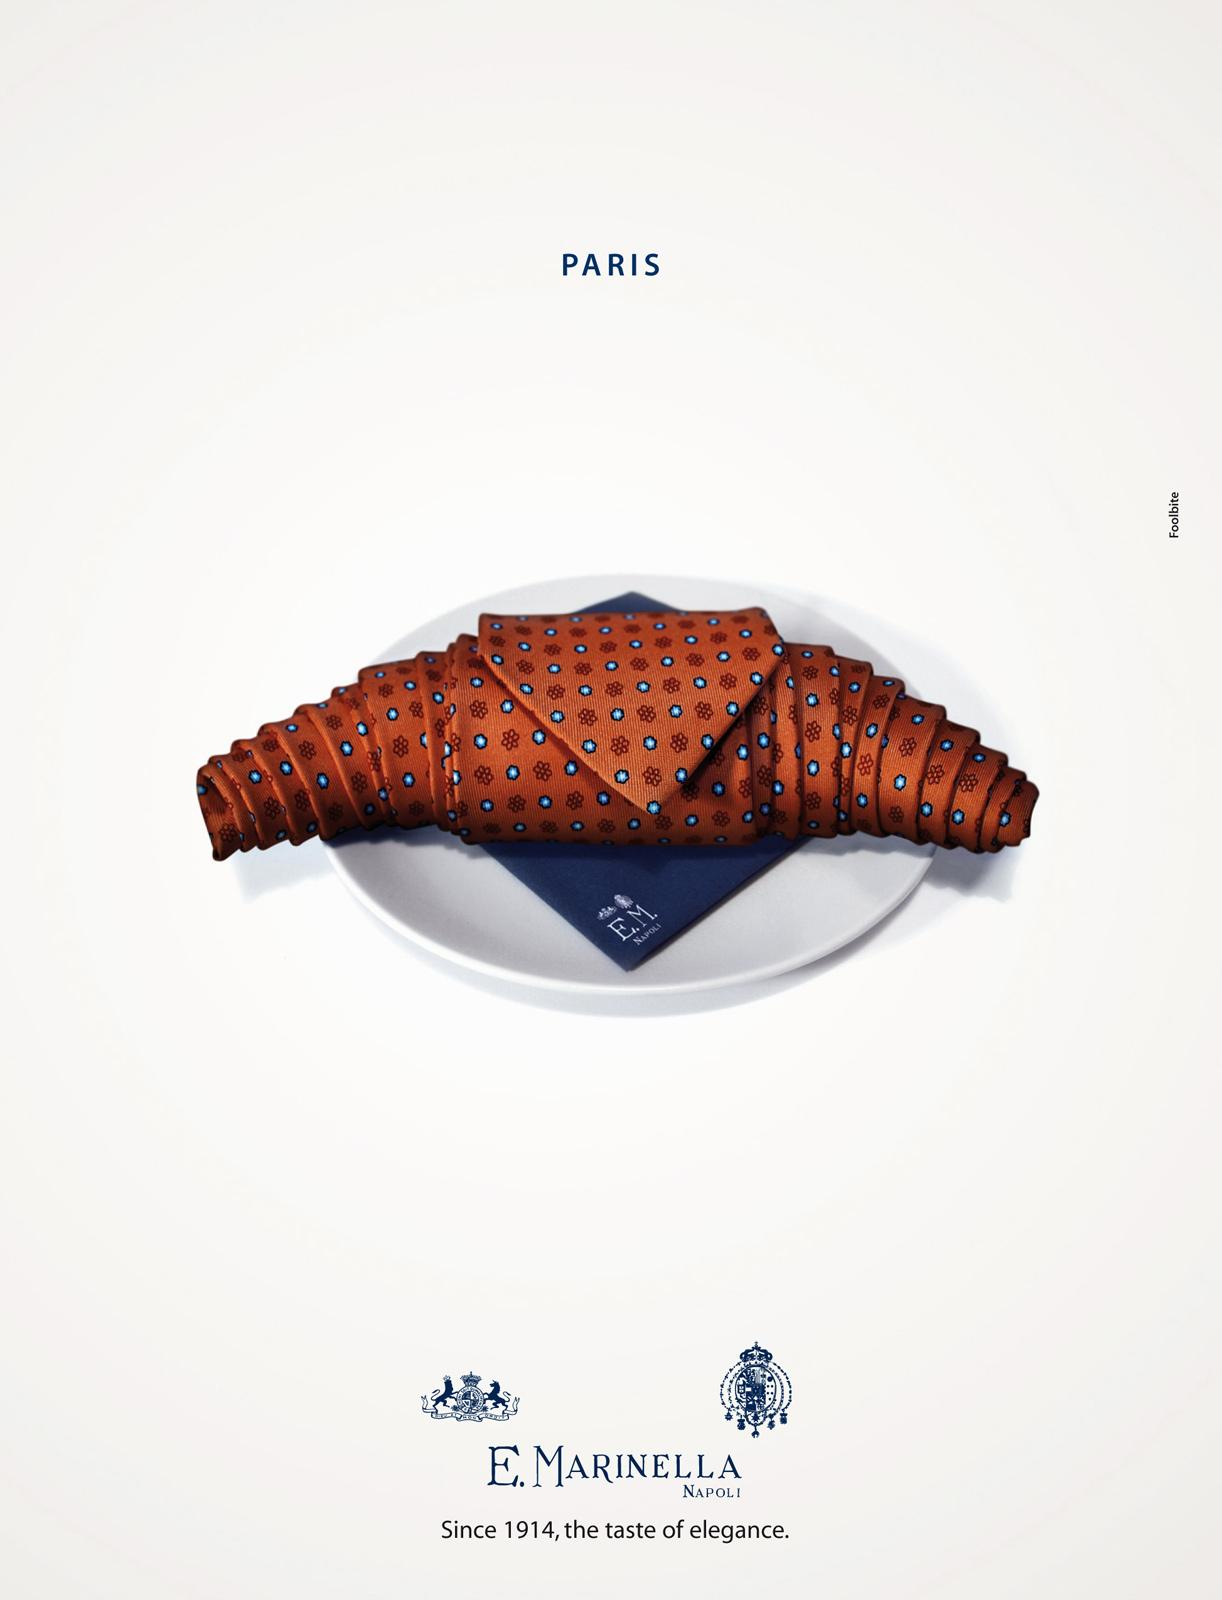 Marinella Print Ad -  Paris